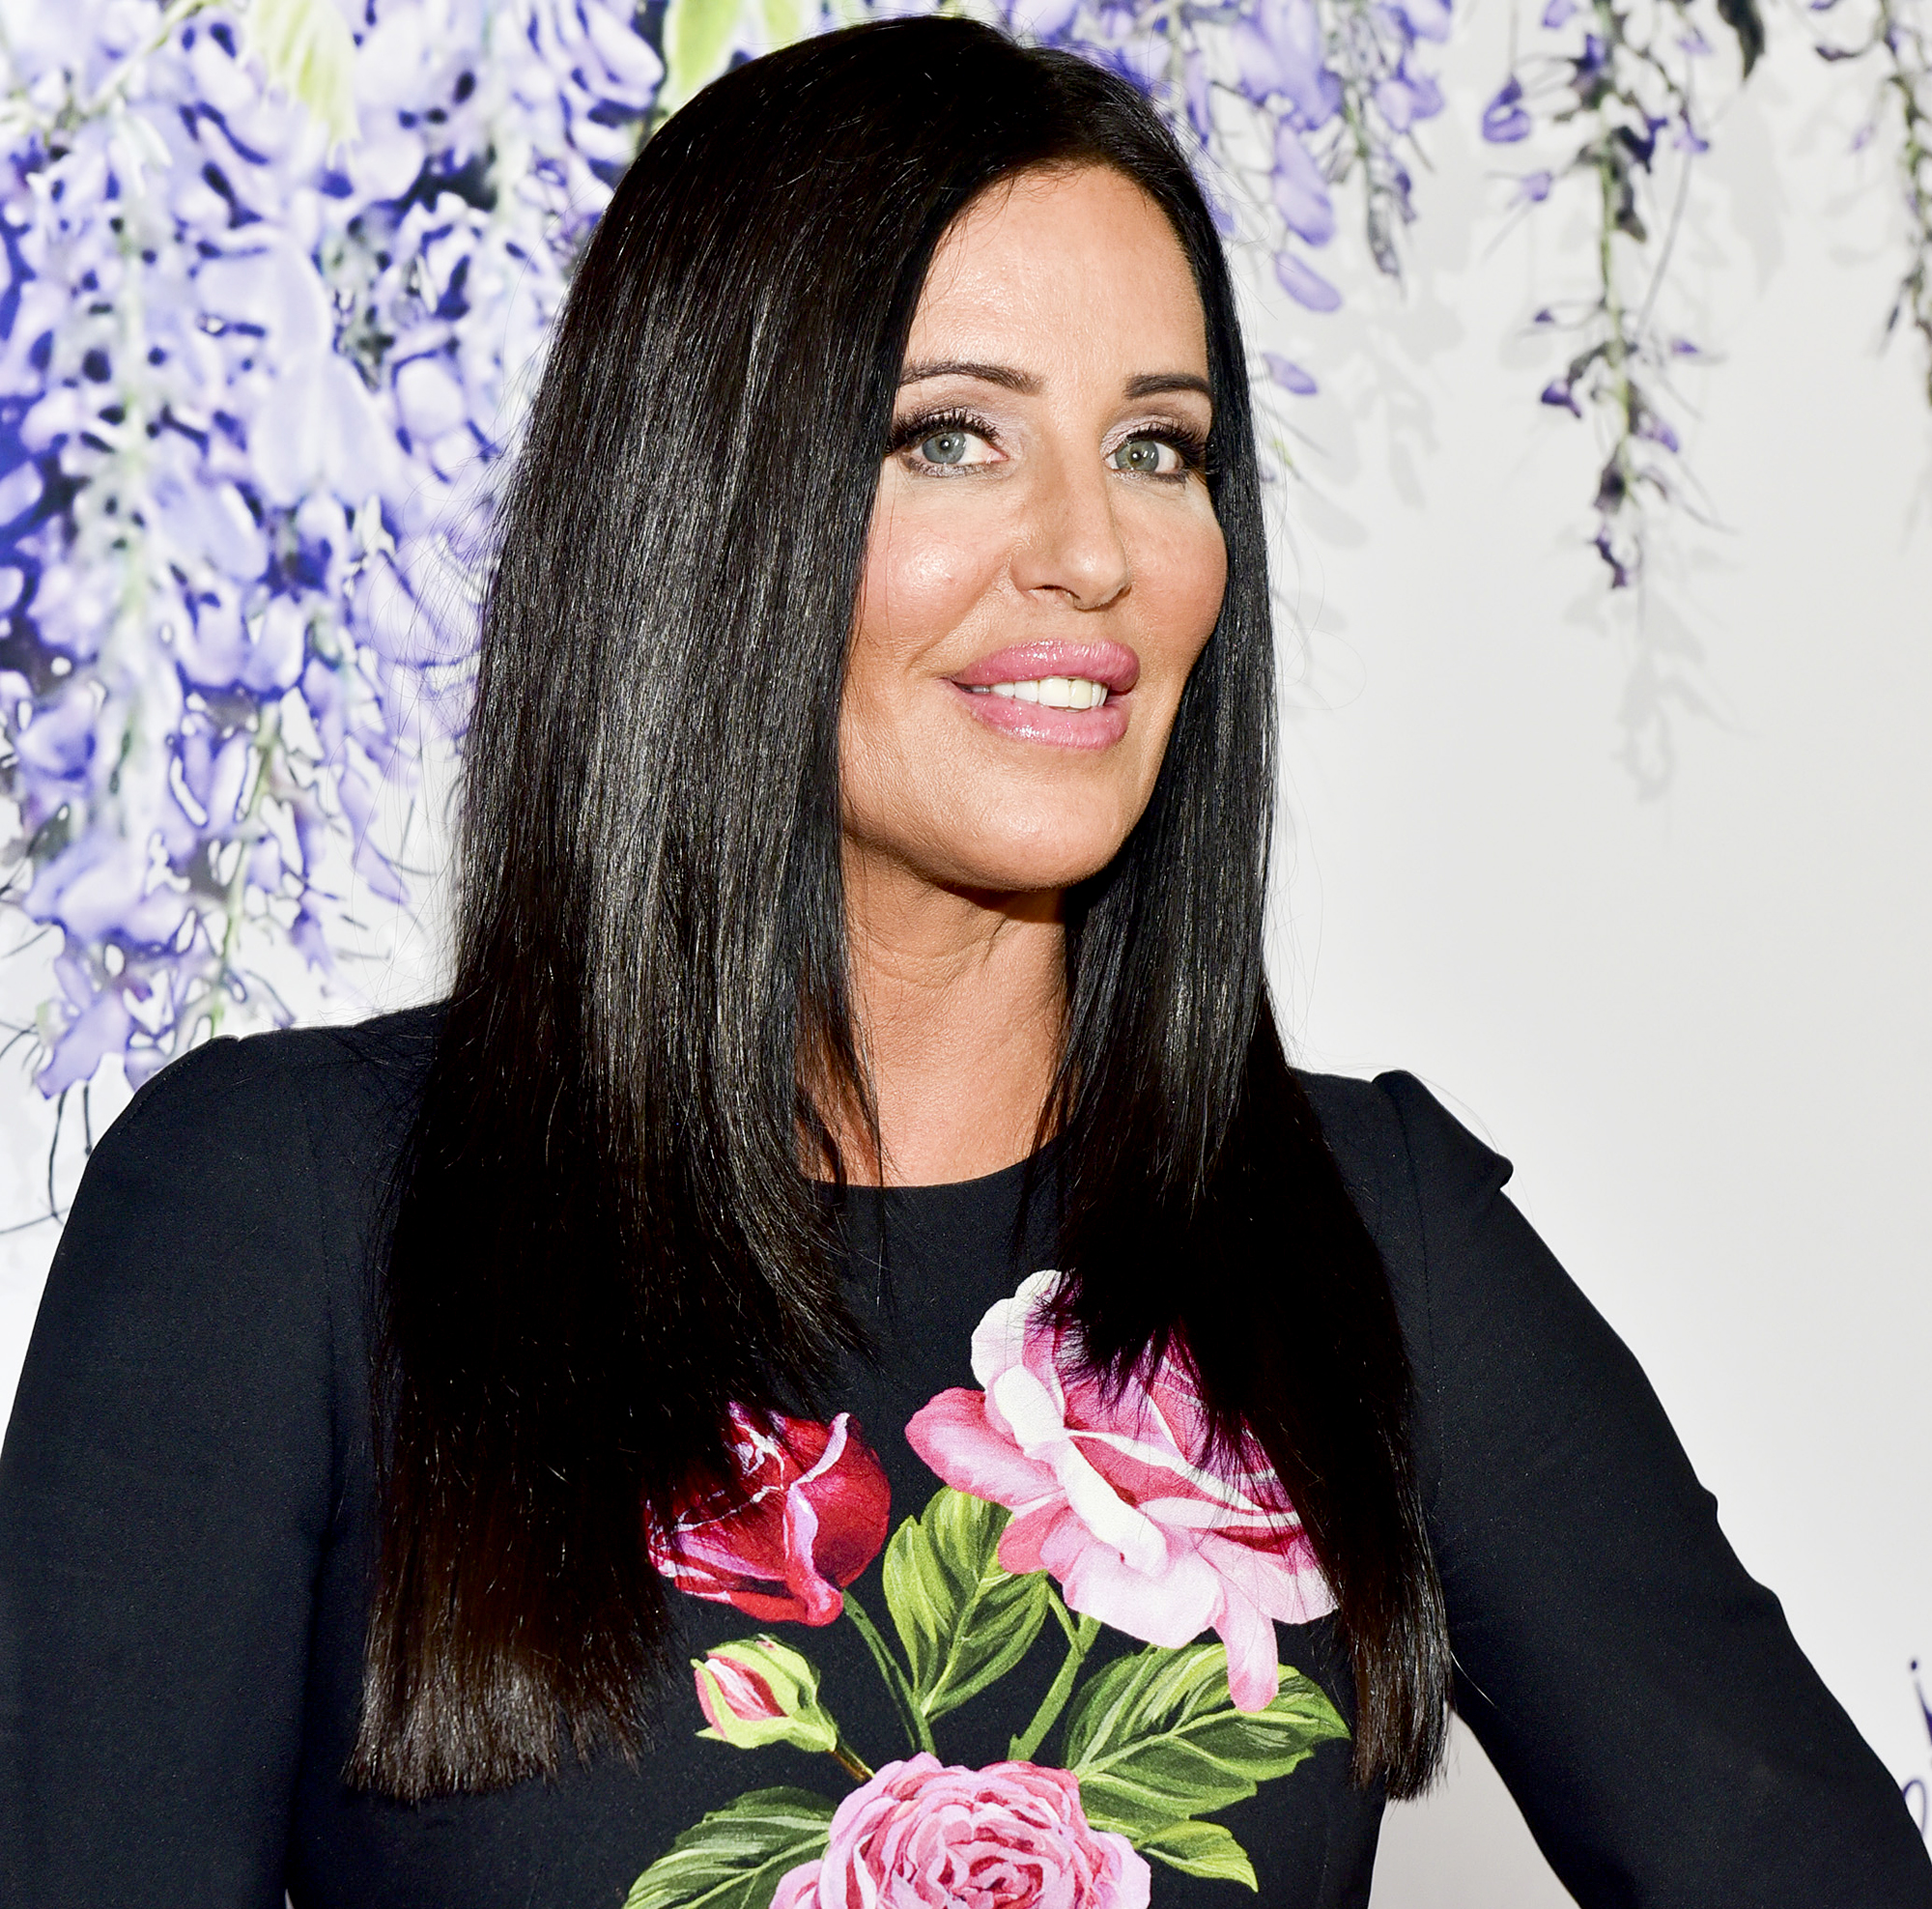 Images - Patti stanger biography